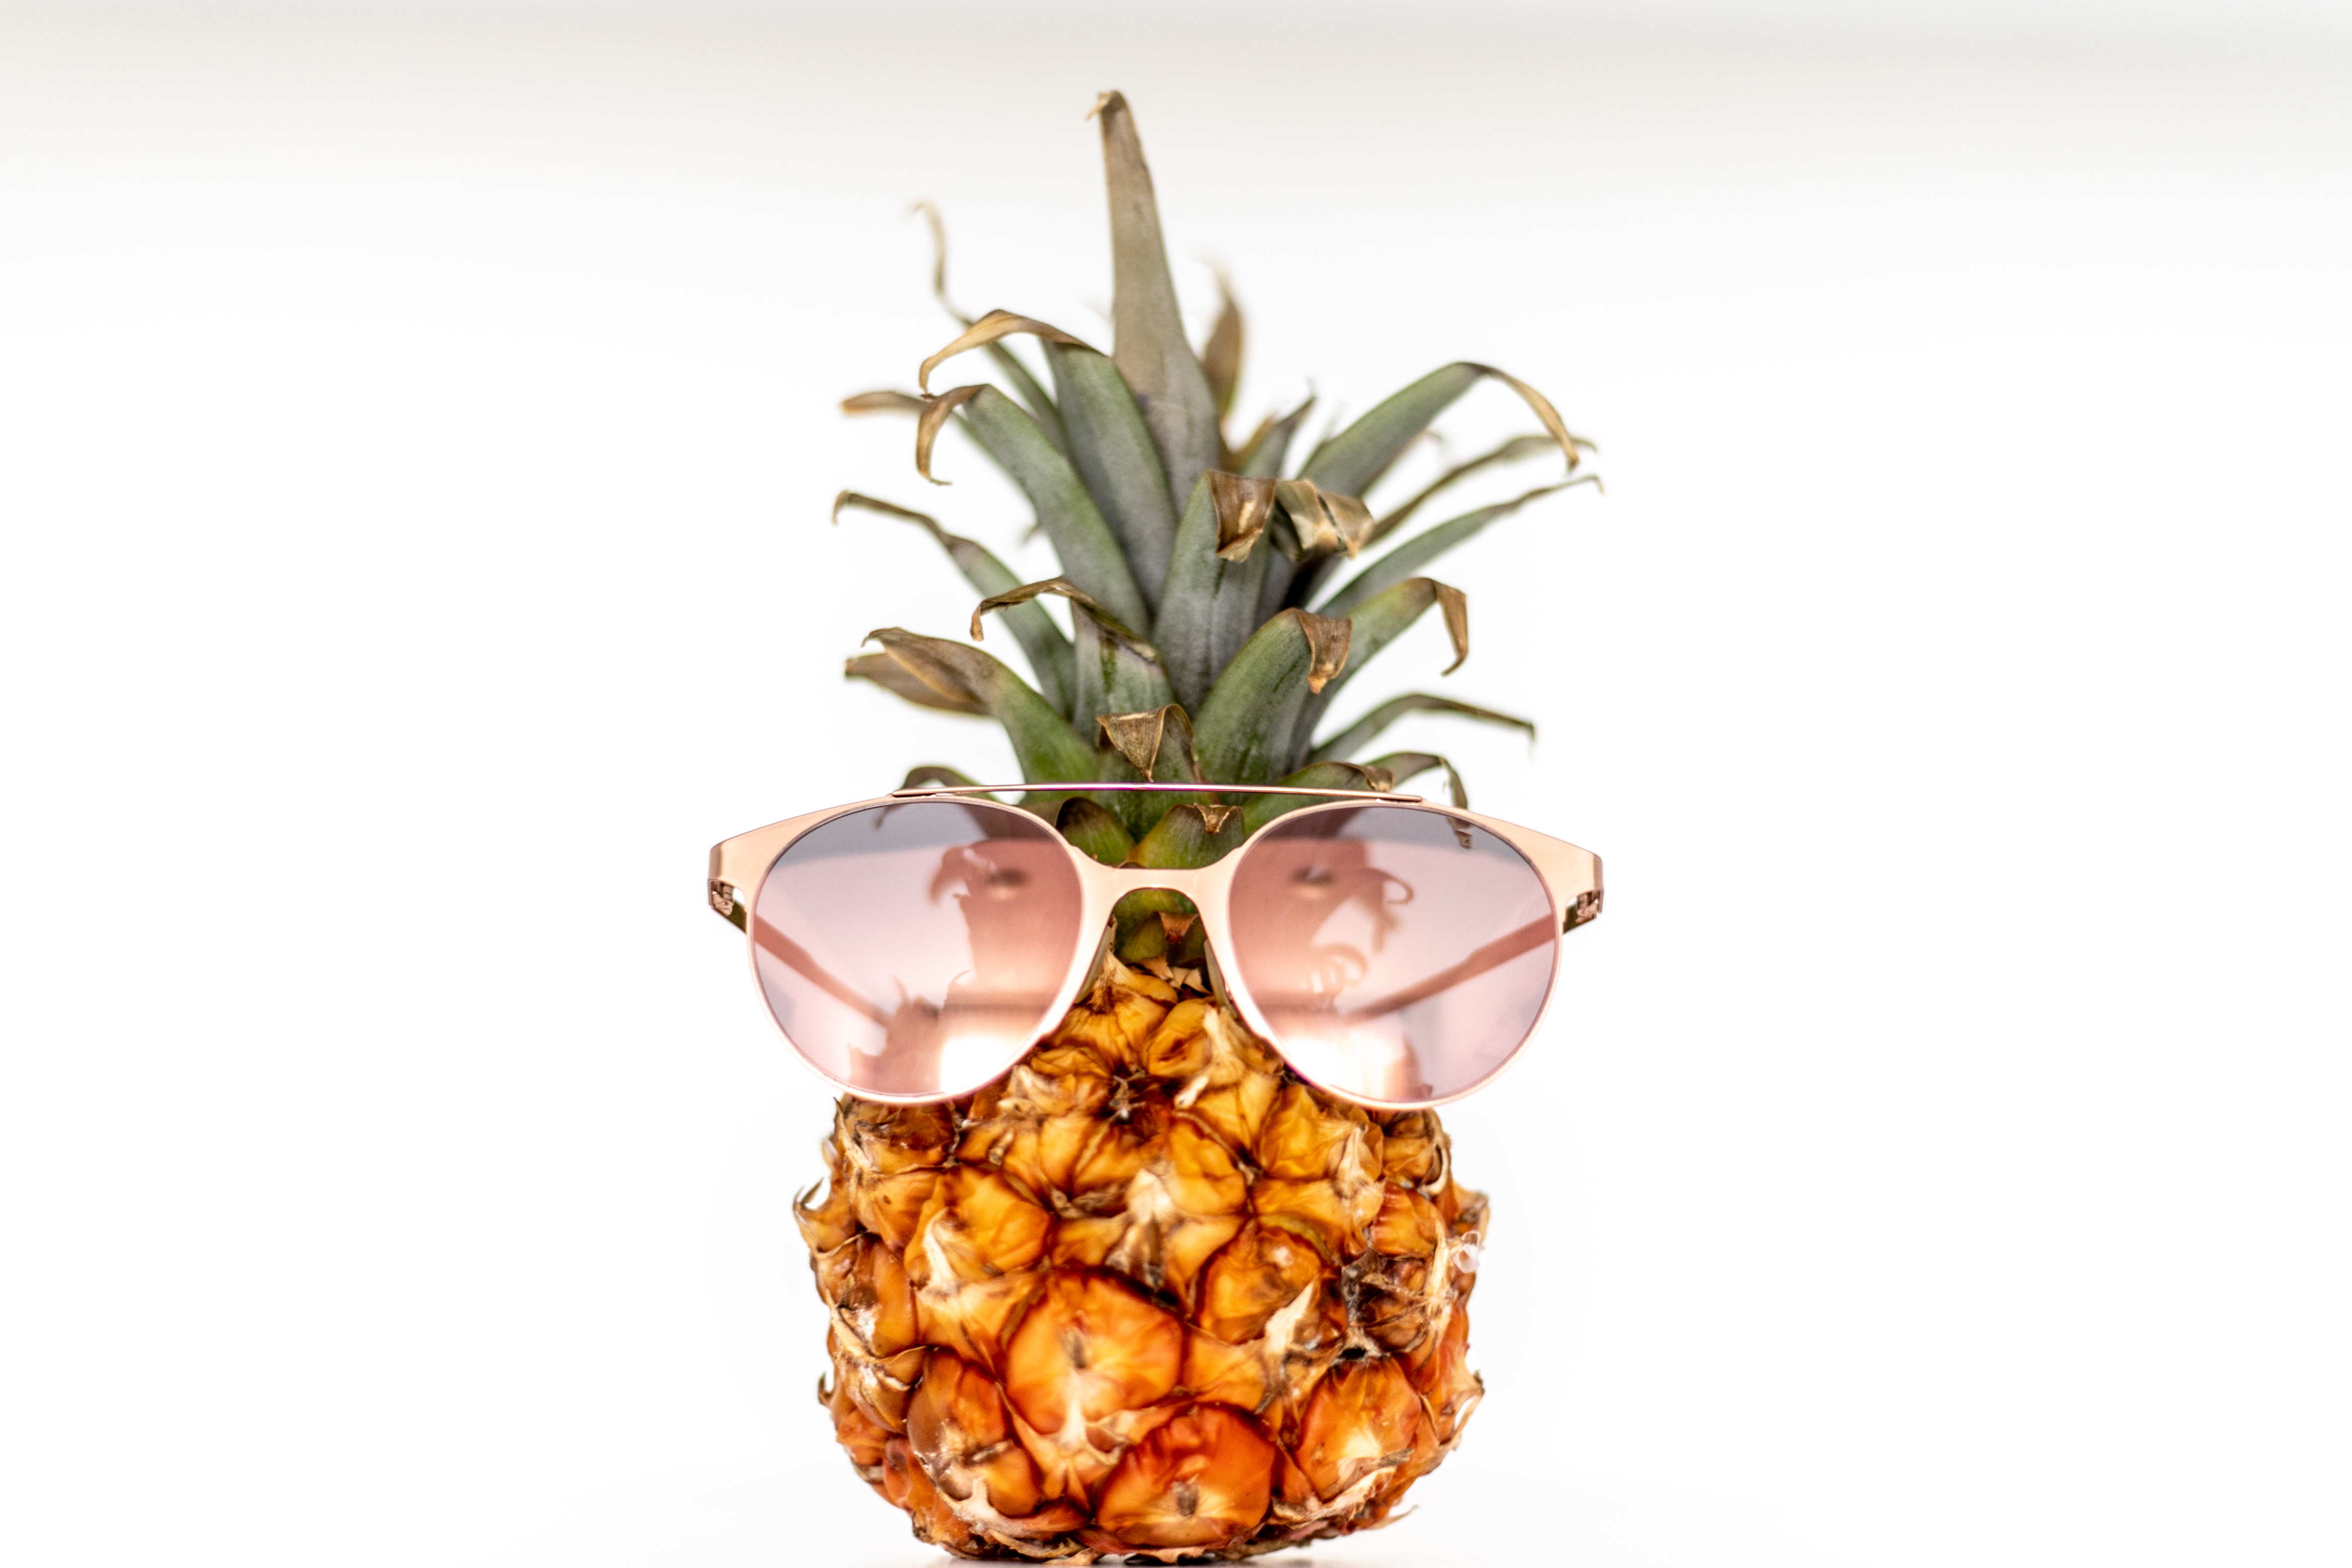 Pineapple With Sunglasses Tumblr Free Stock Photo Of Ananas Farbe Frische